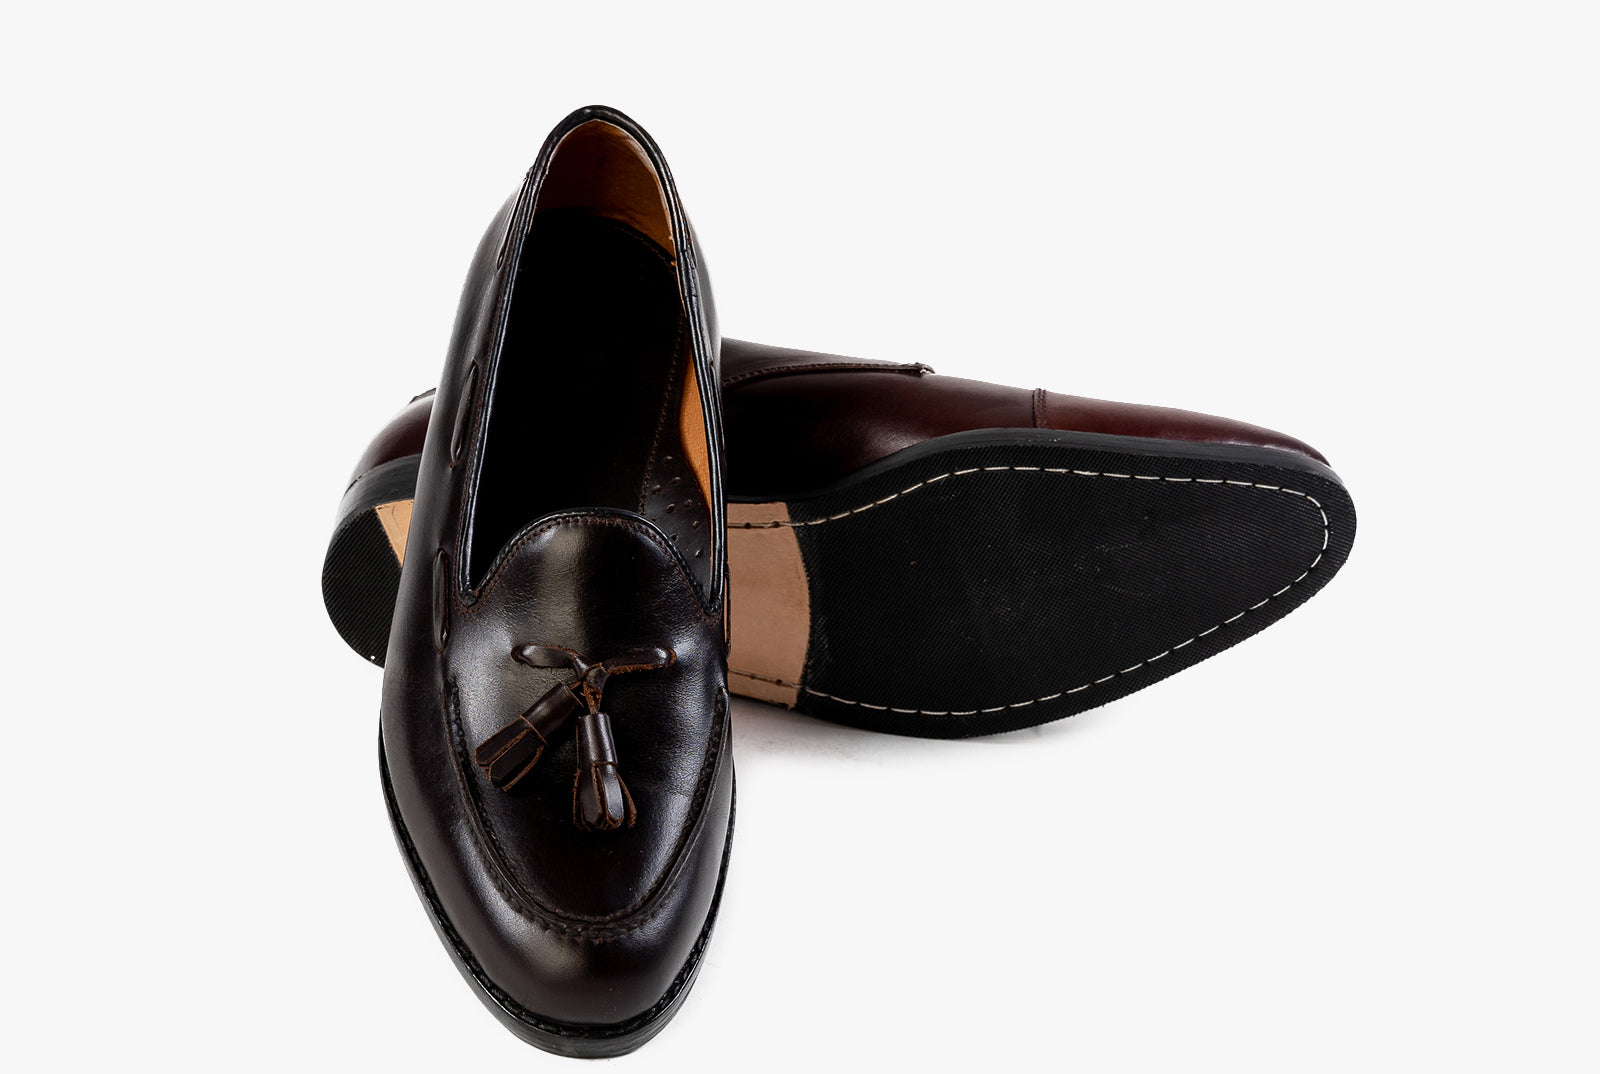 The Grand Tassel Loafer - Mahogany Brown - Marquina Shoemaker